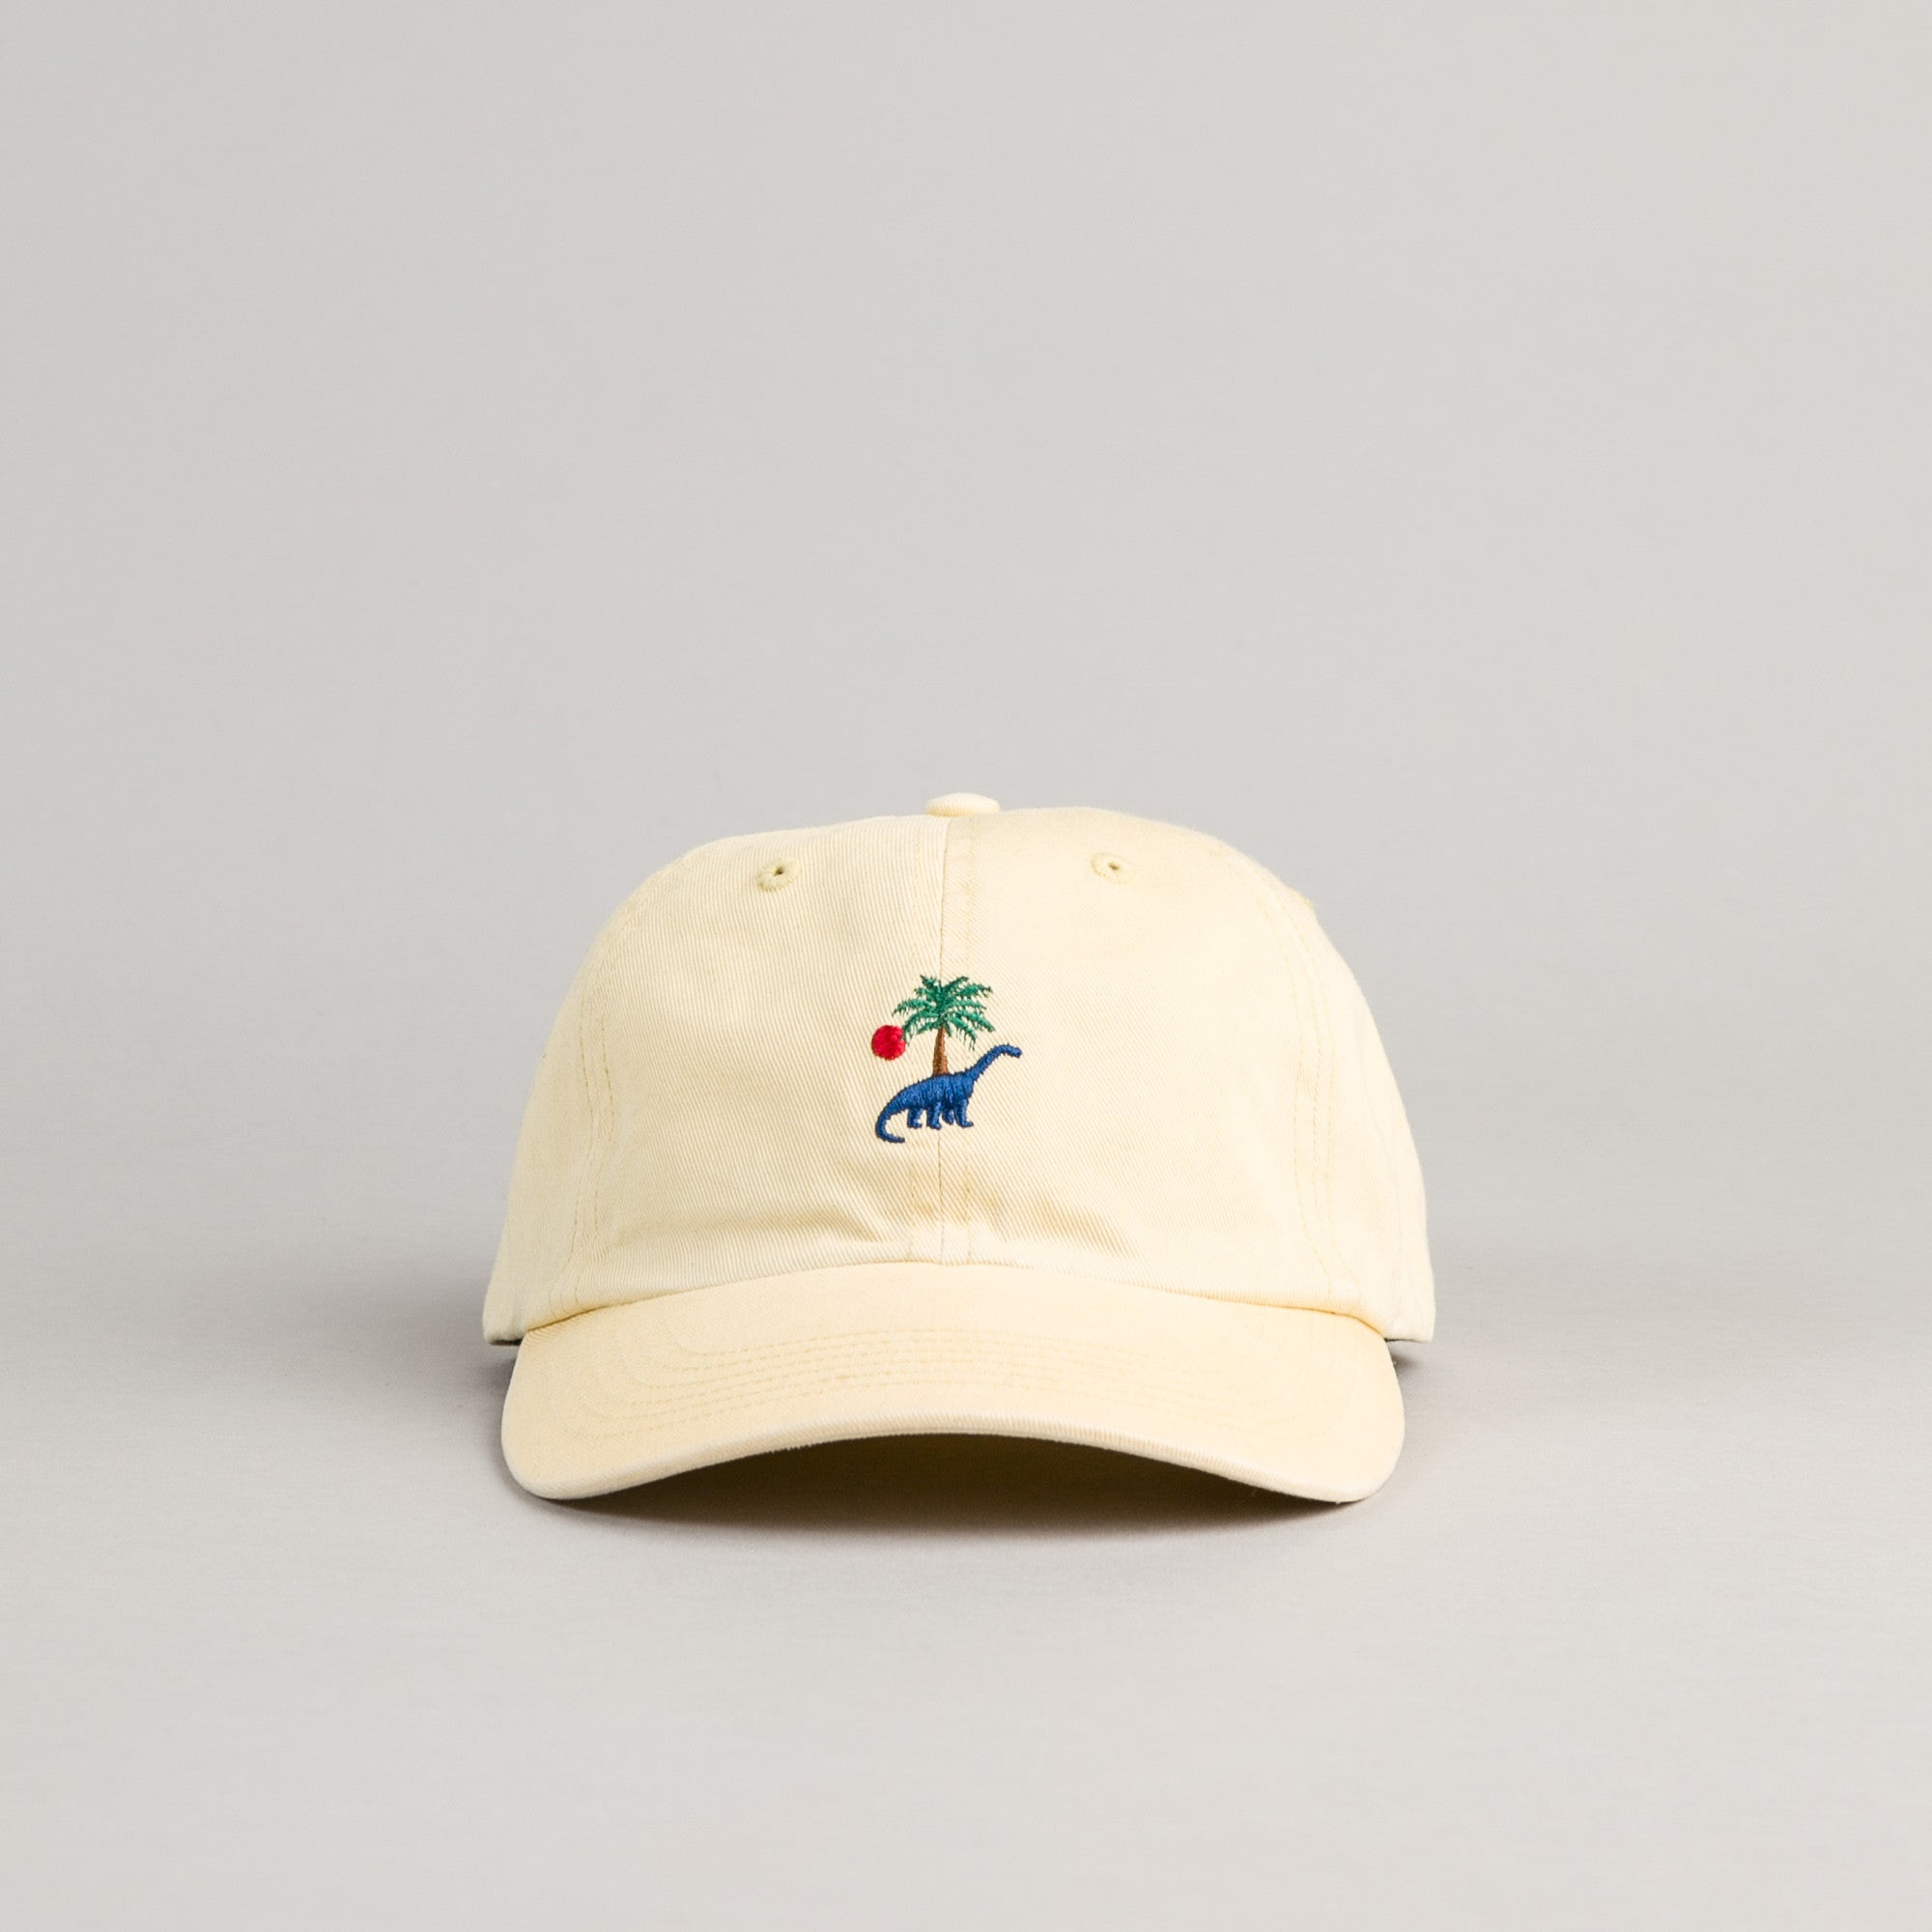 Belief Prehistoric Baseball Cap - Maize